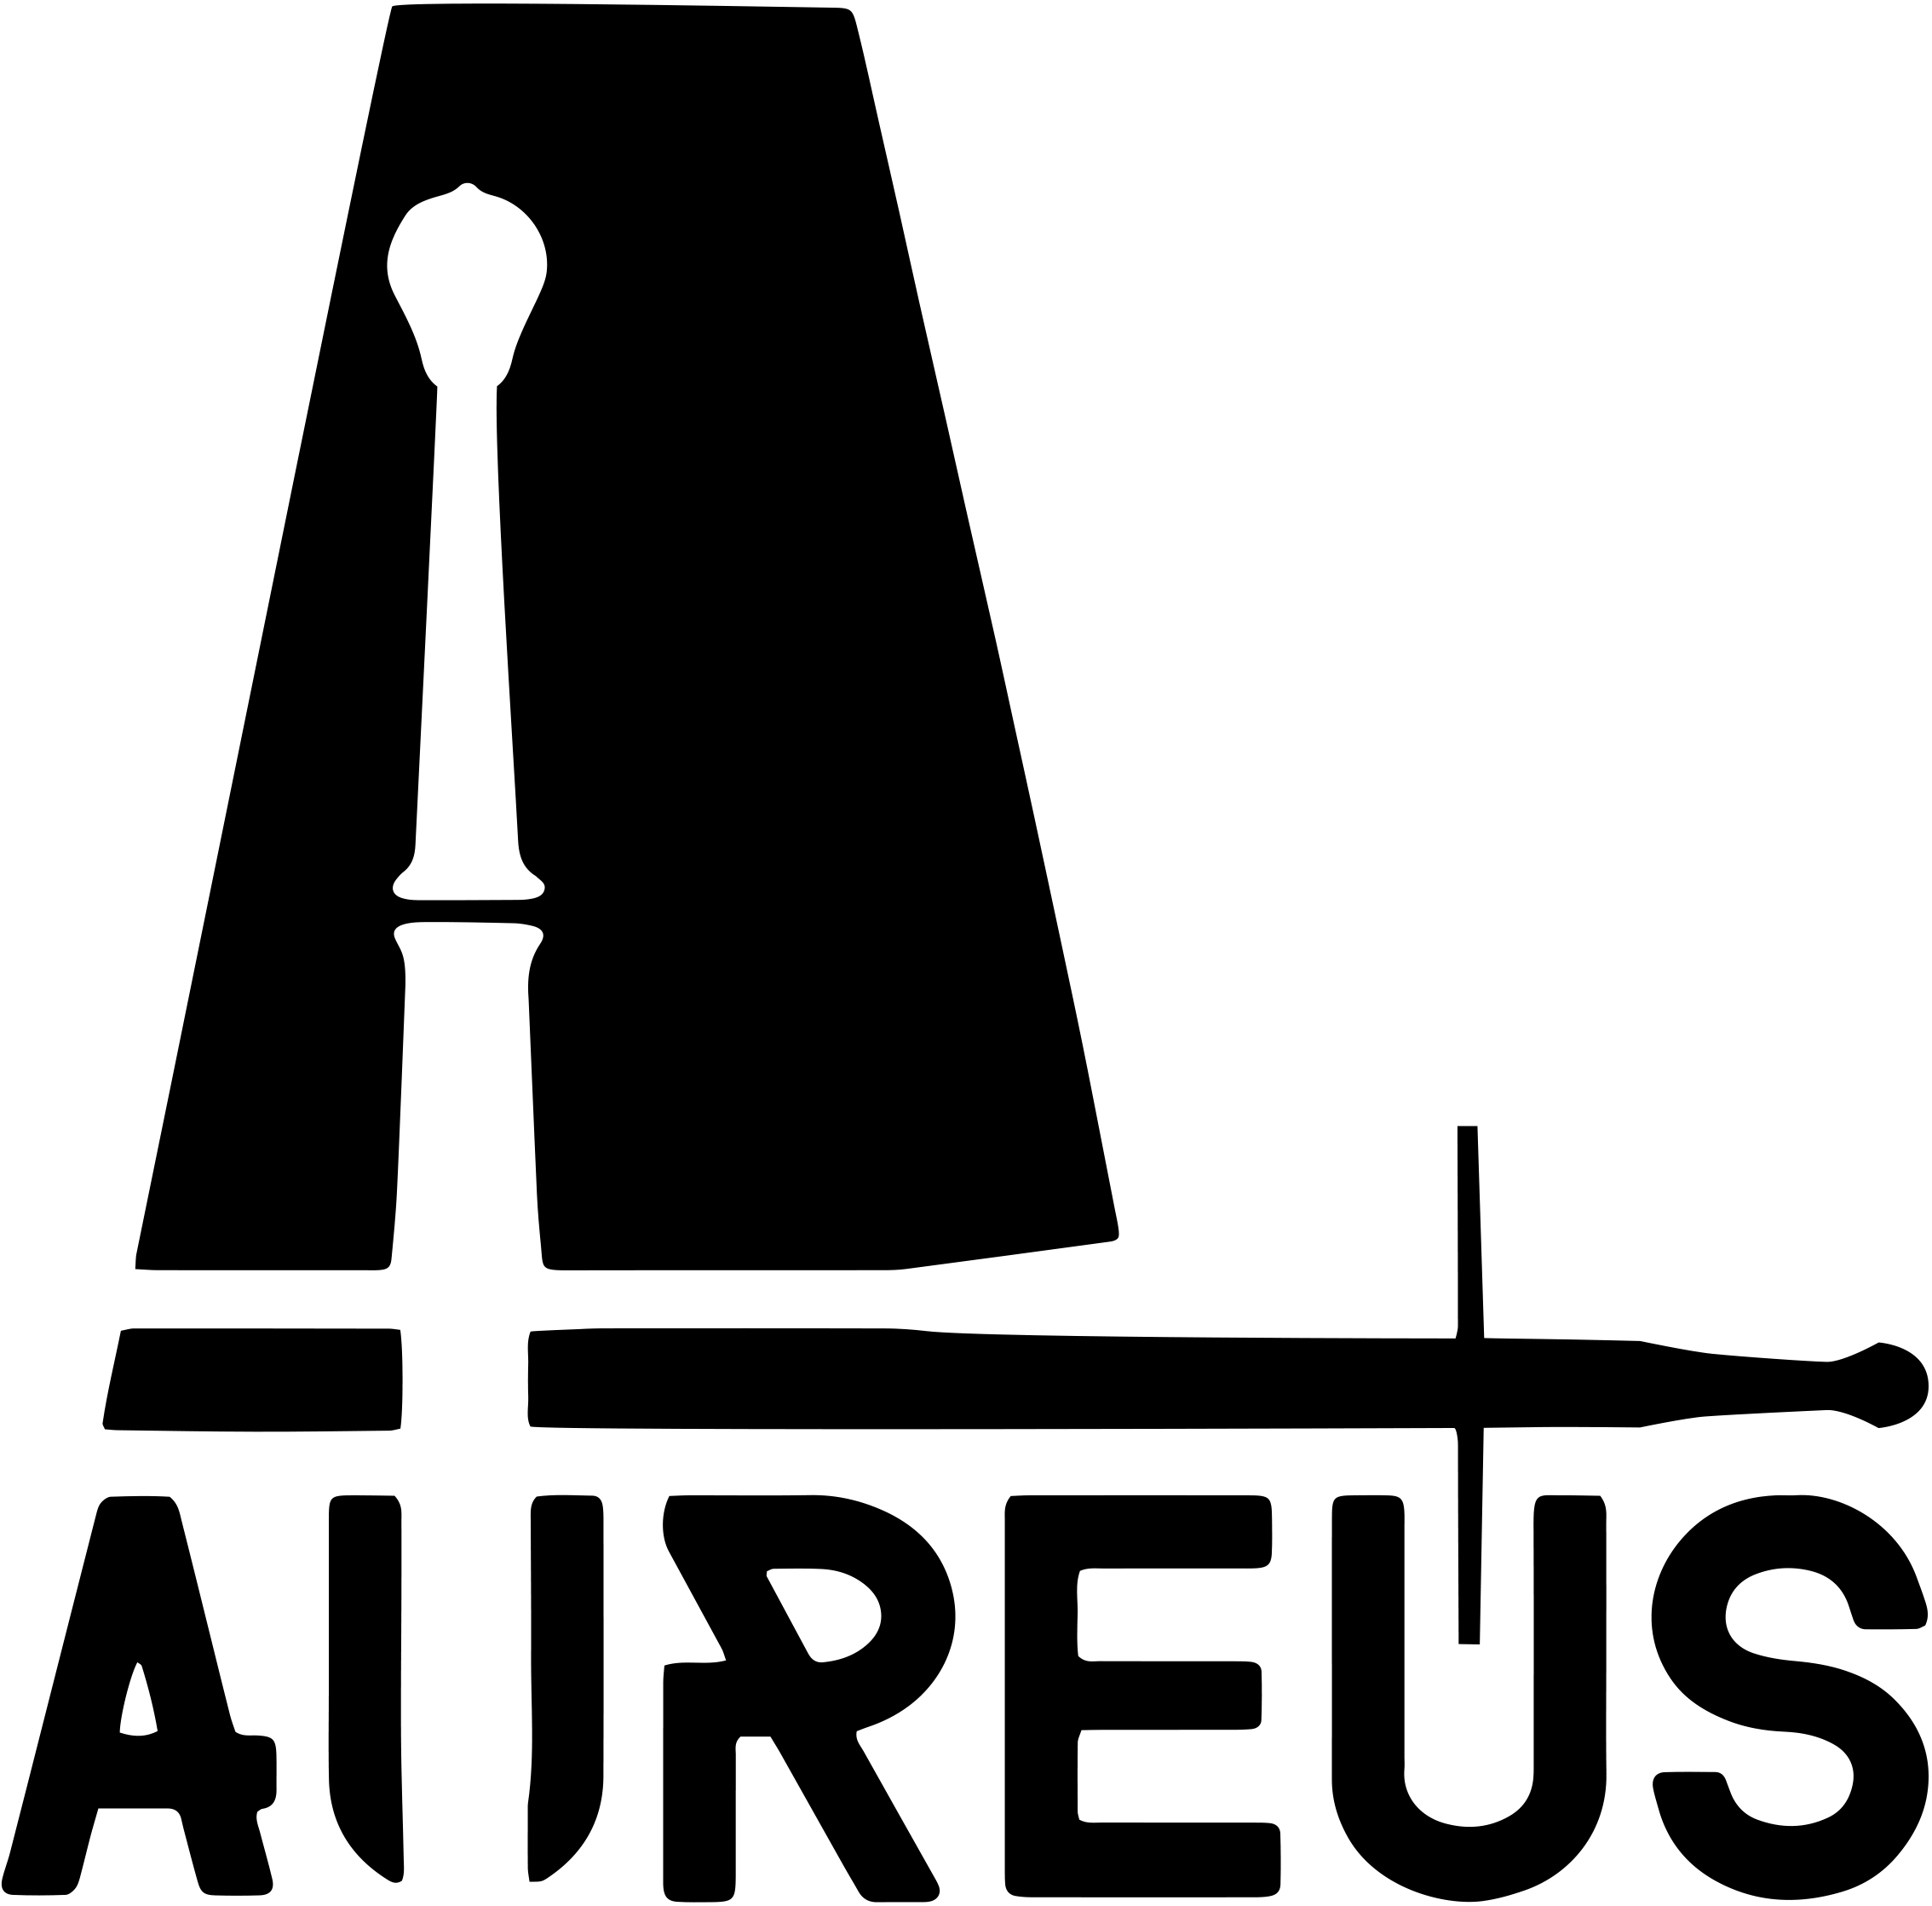 Aureus Swords - We're happy to announce that this year we will be sponsored by Aureus Swords.You can find their website here: https://www.aureusswords.com/And like them on Facebook here: https://www.facebook.com/aureusswords/